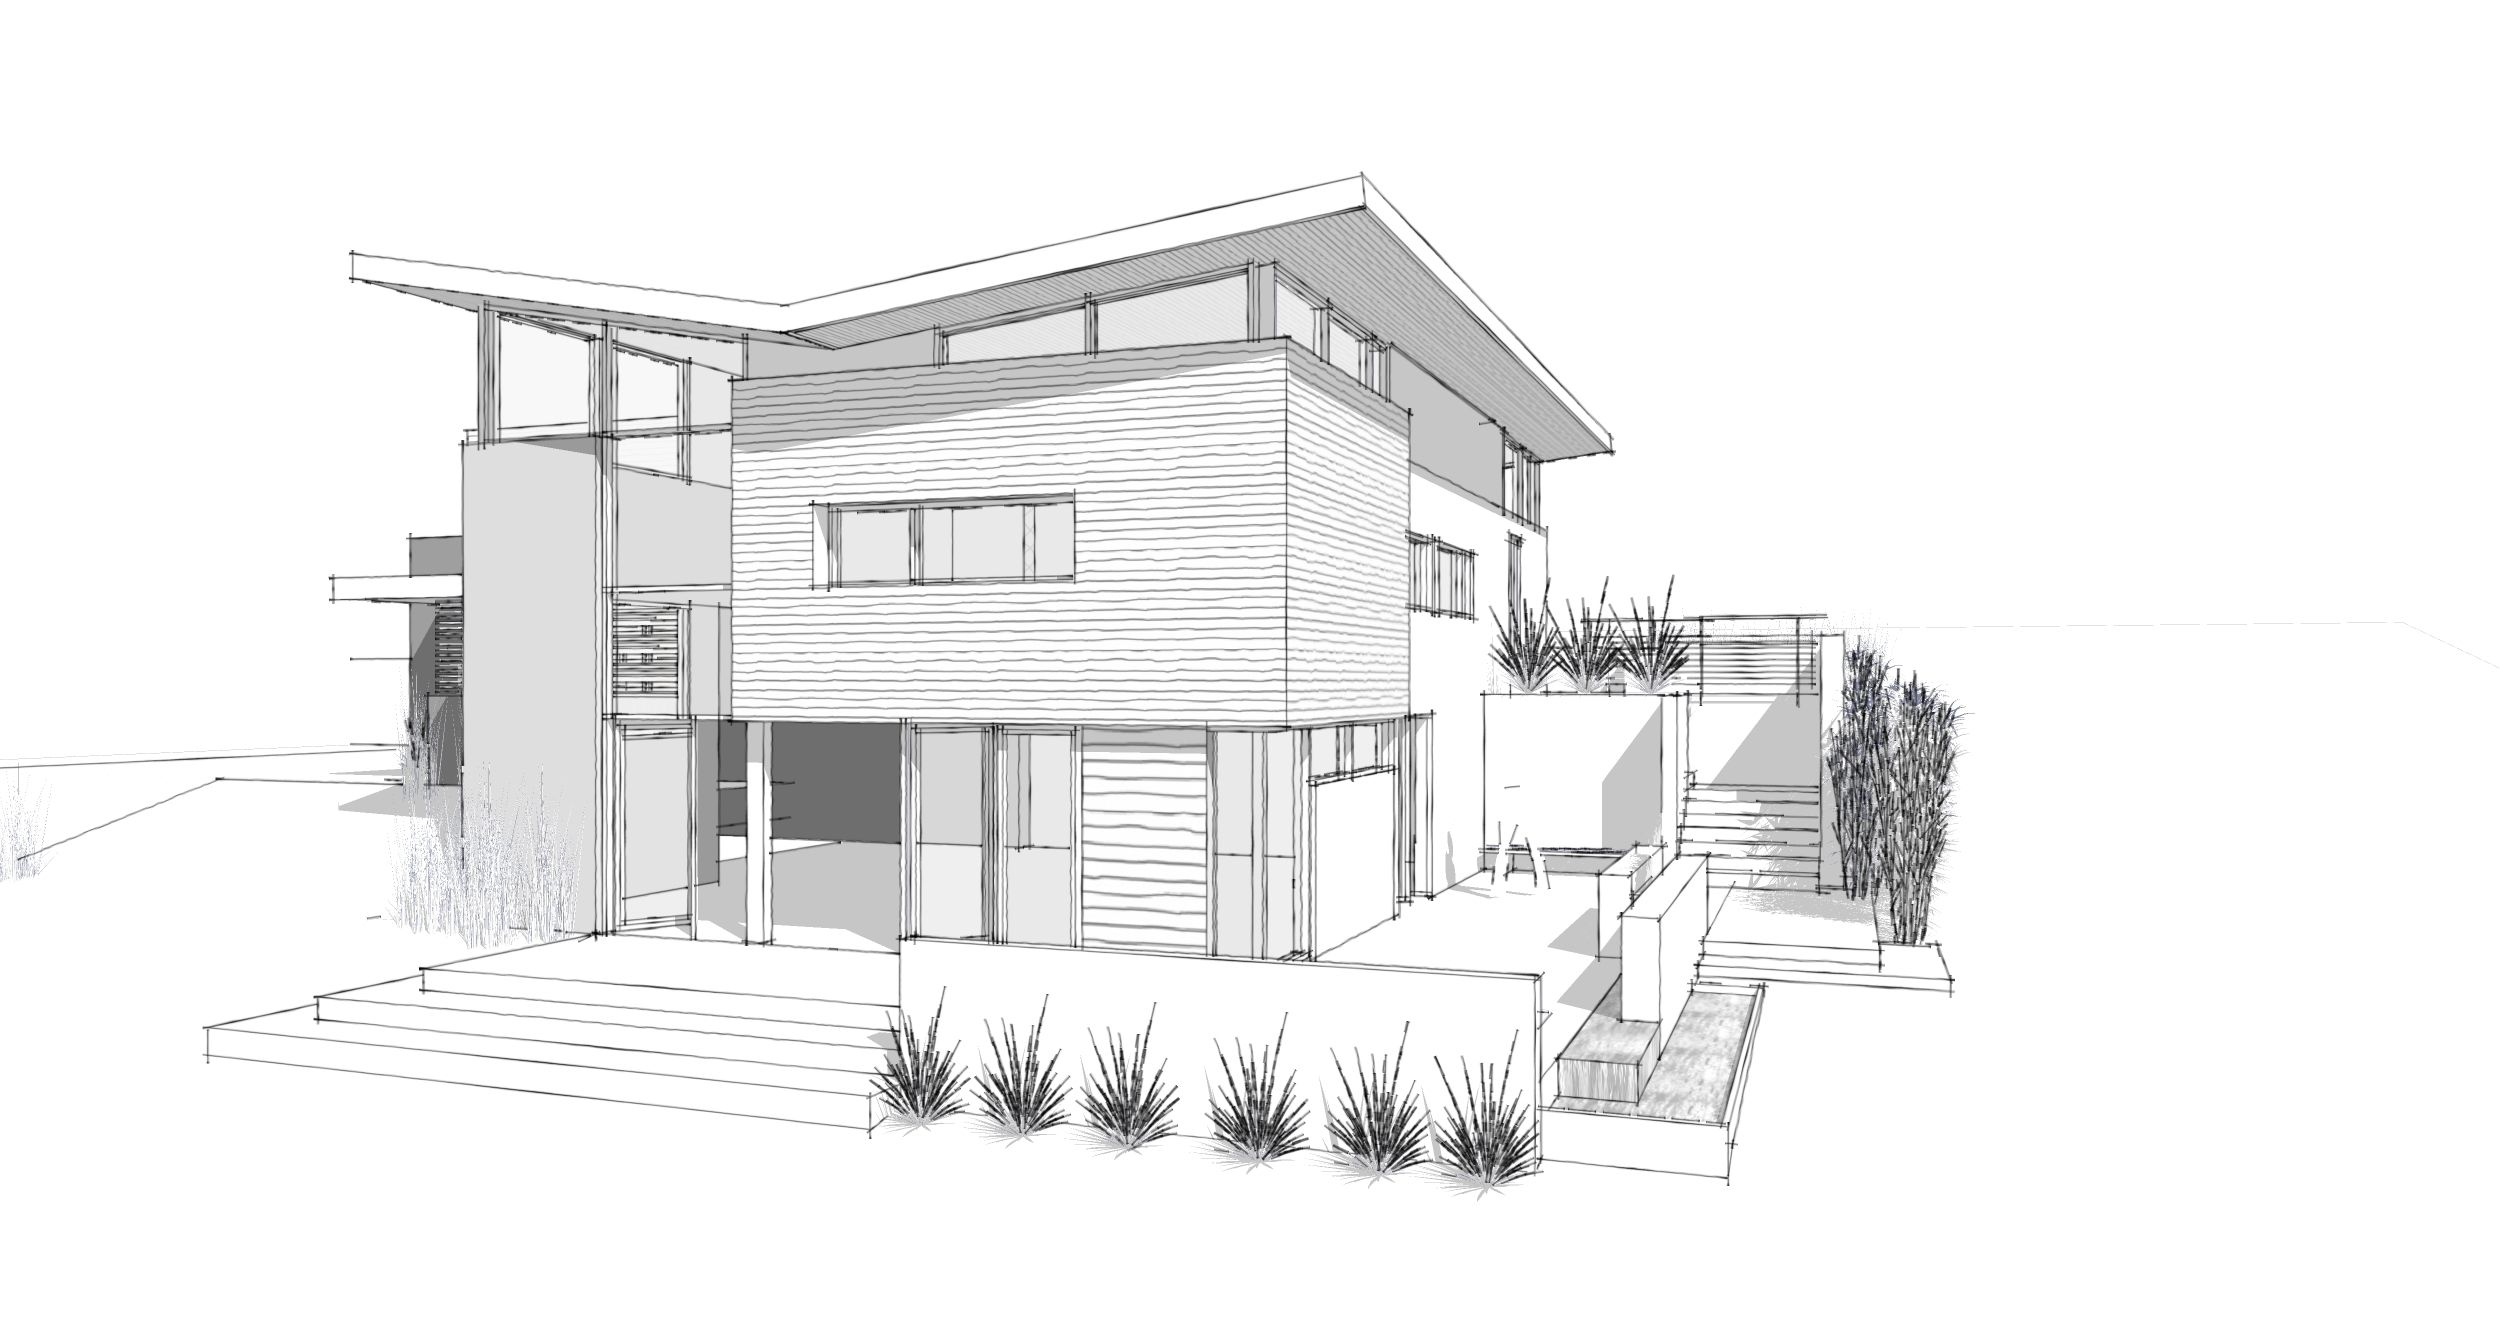 Modern House Architecture Sketch Architectural Cozy 2 On Home Design Ideas Dream House Drawing House Sketch Modern Architecture House